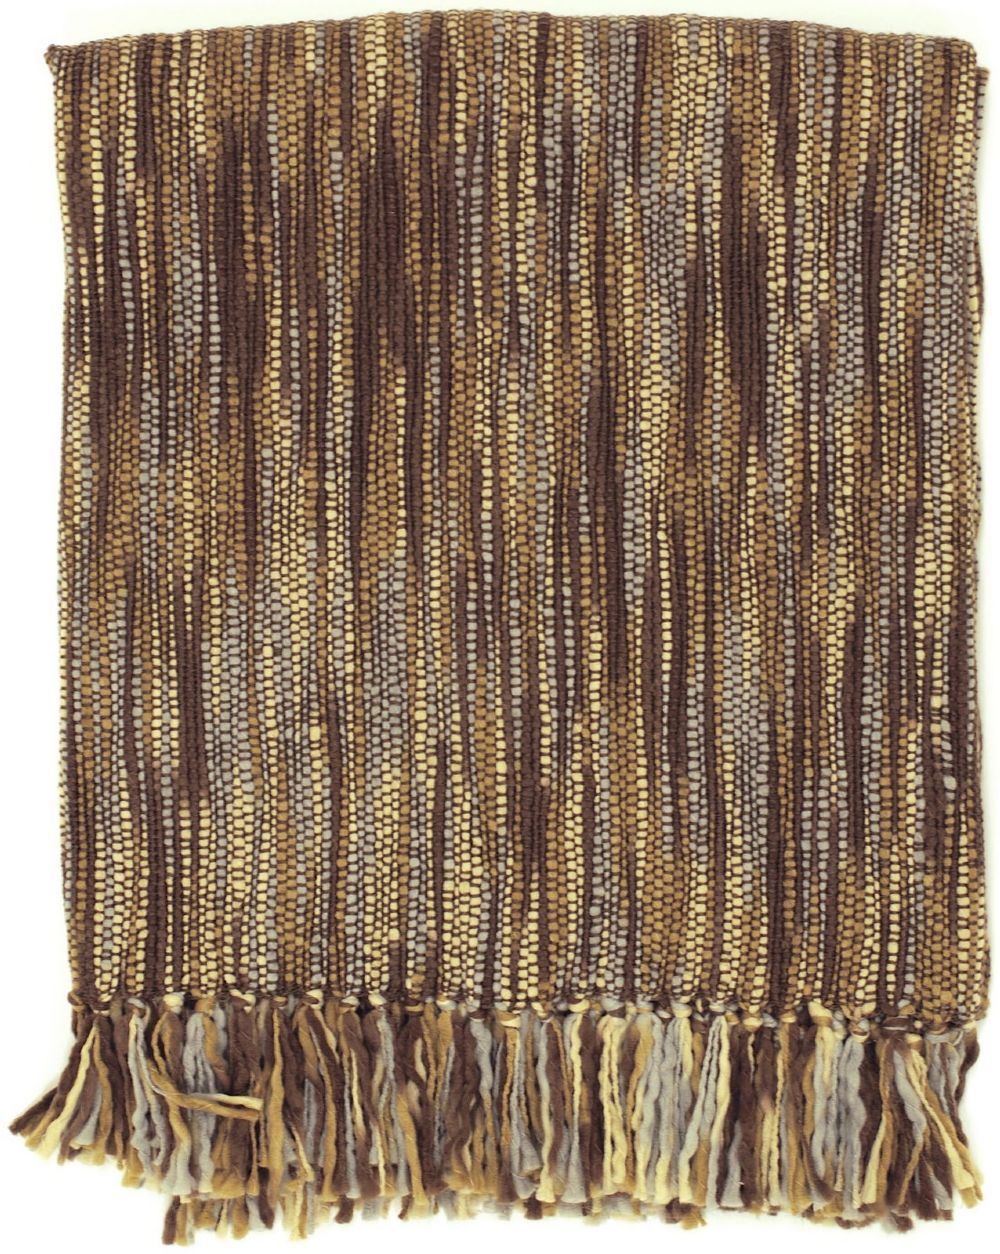 surya teegan solid/striped throw collection